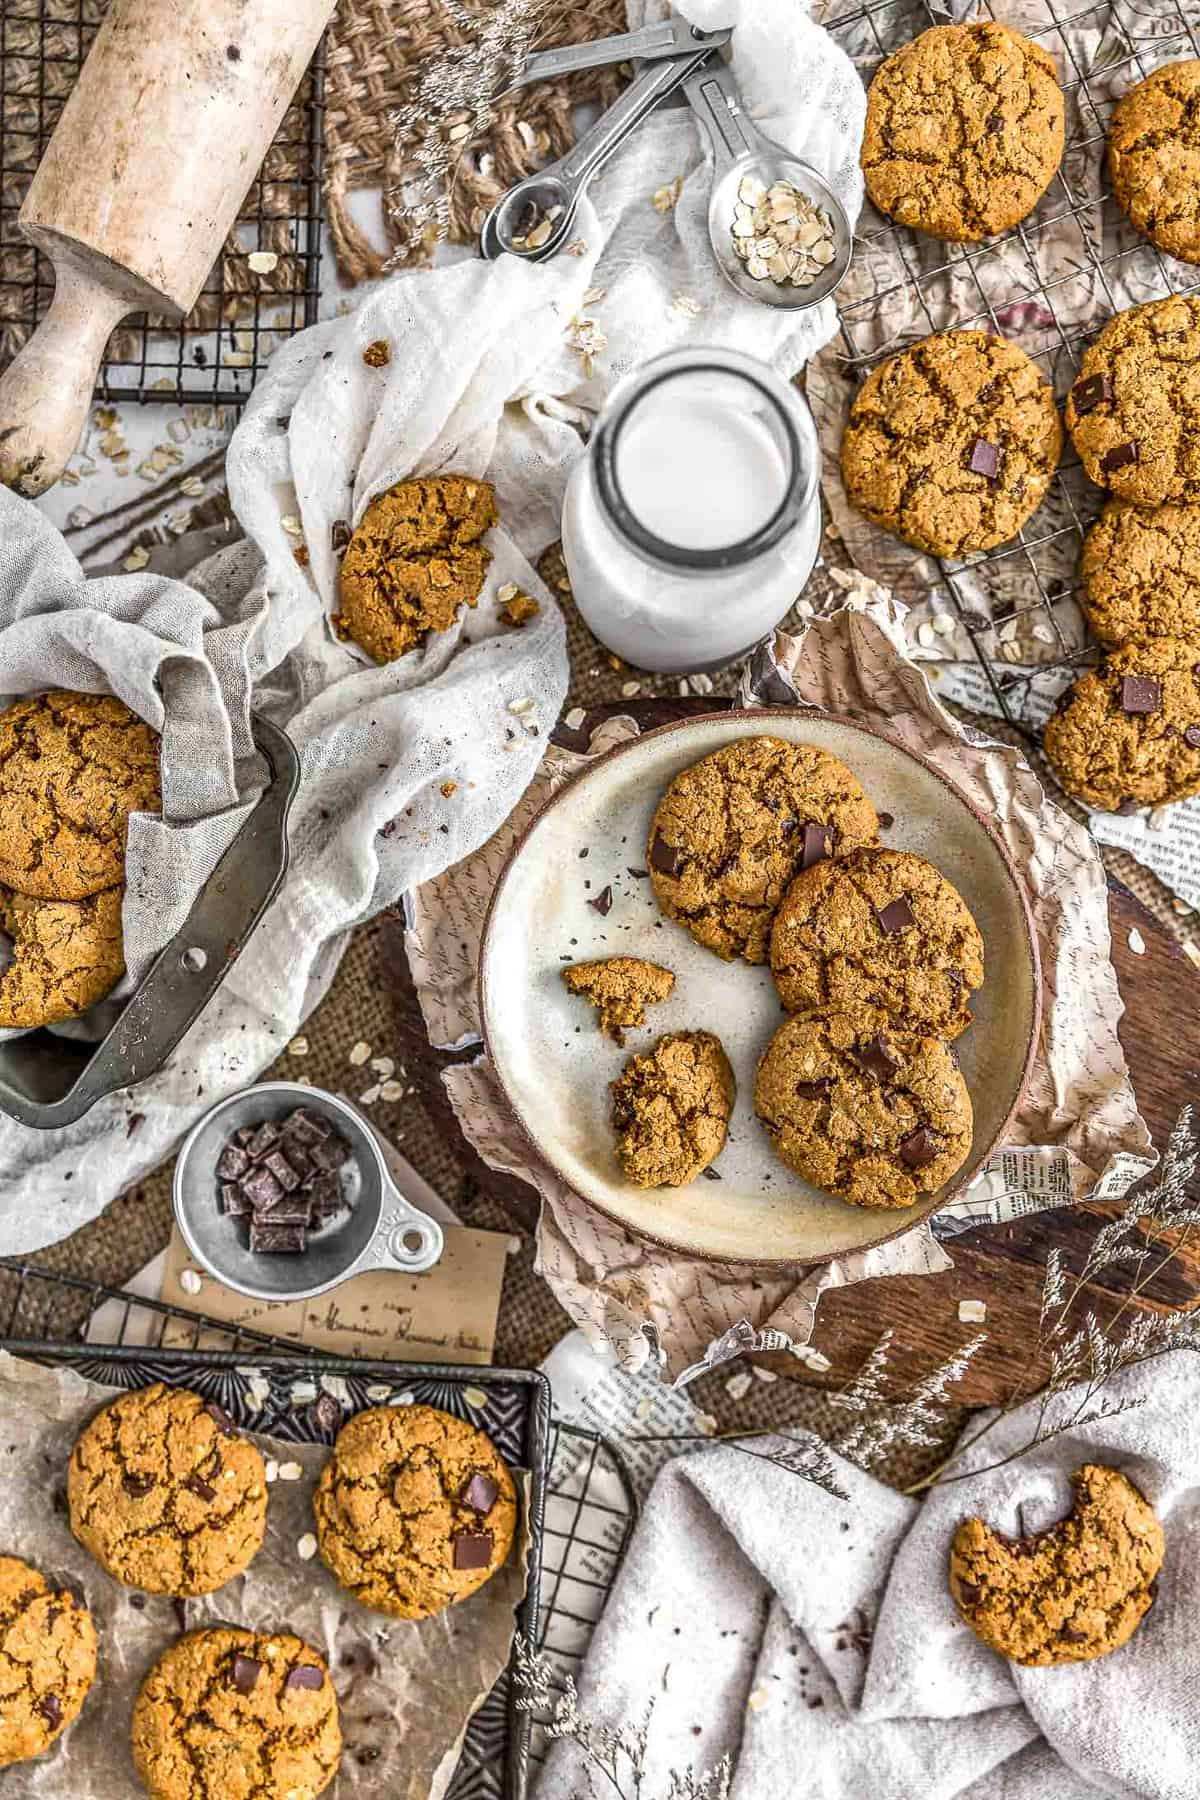 Tablescape of Healthy Vegan Chocolate Chip Cookies